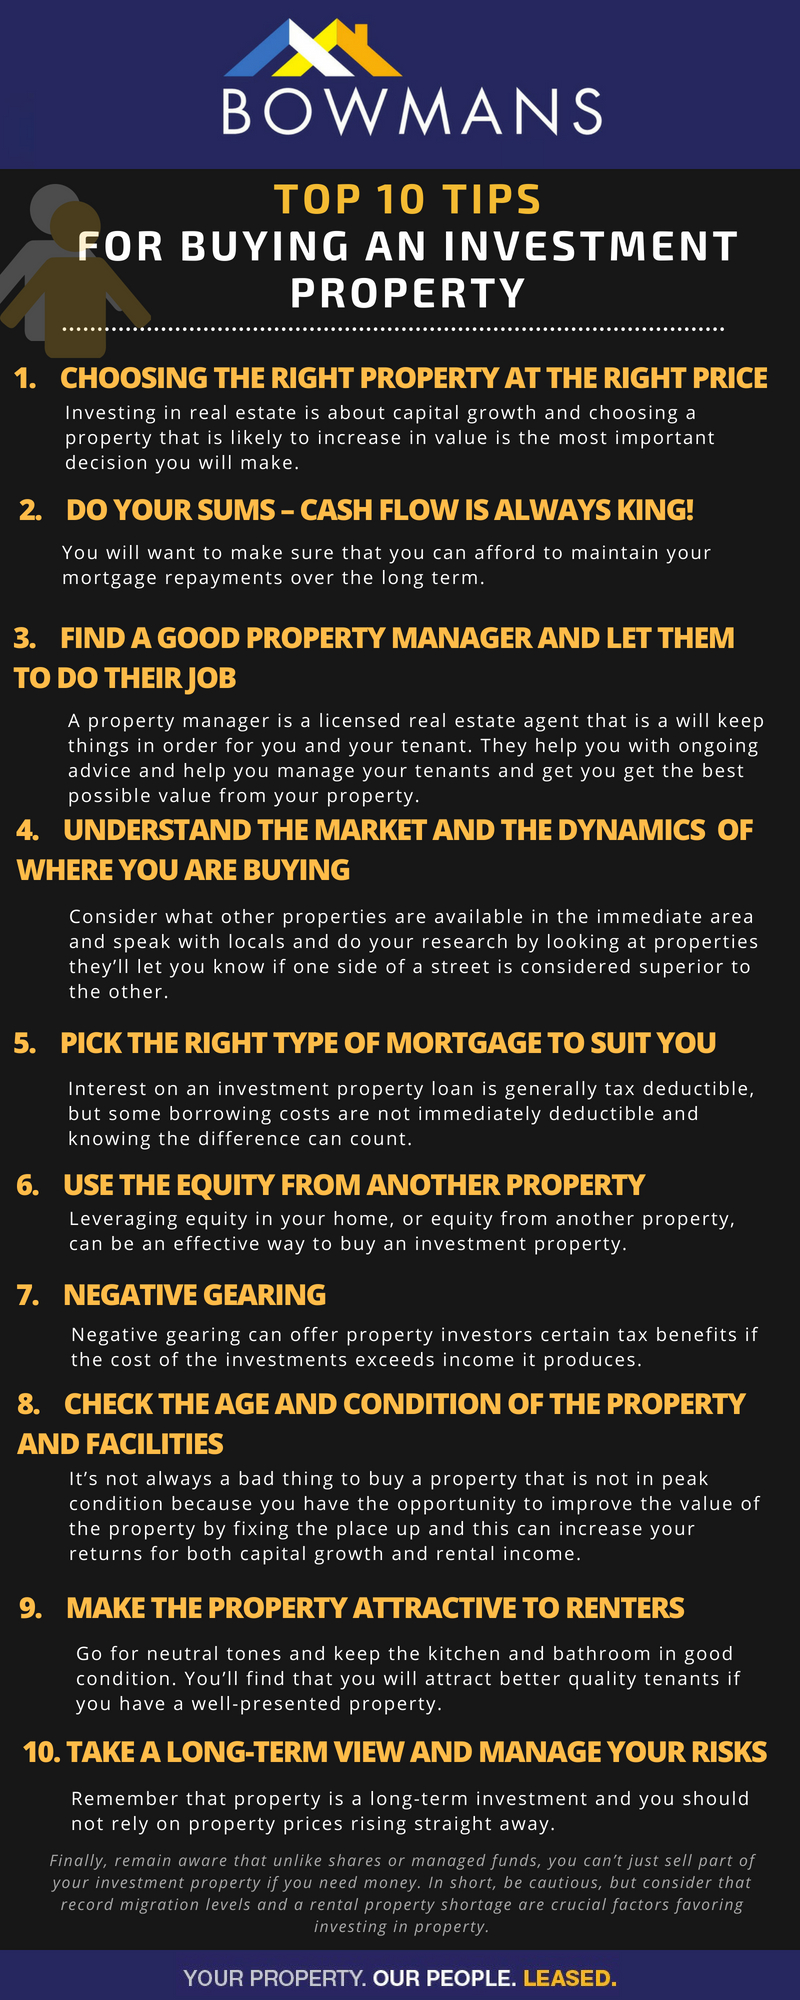 Top 10 Tips for Buying an Investment Property